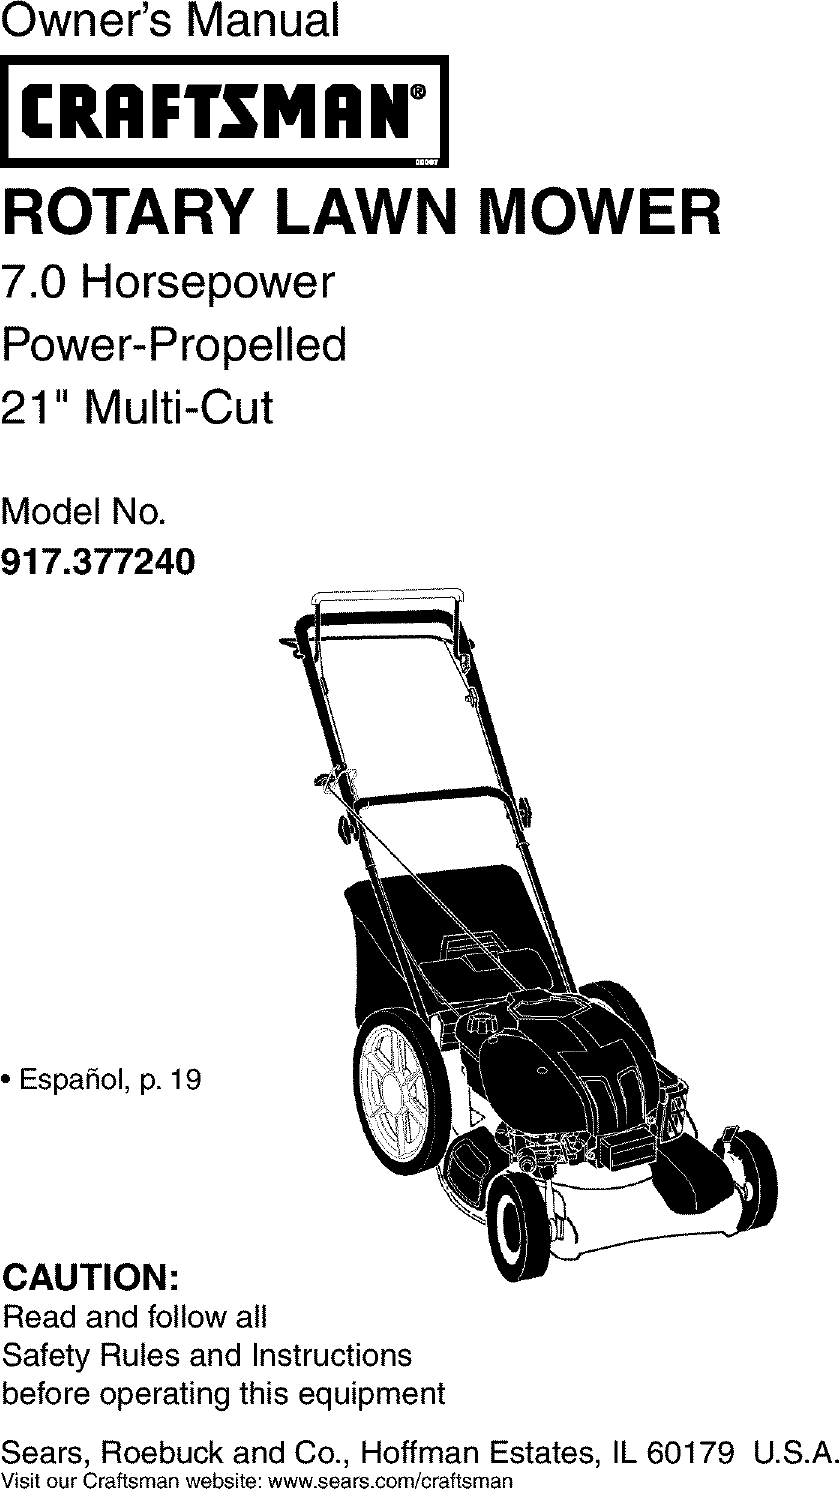 Craftsman 917377240 User Manual ROTARY MOWER Manuals And